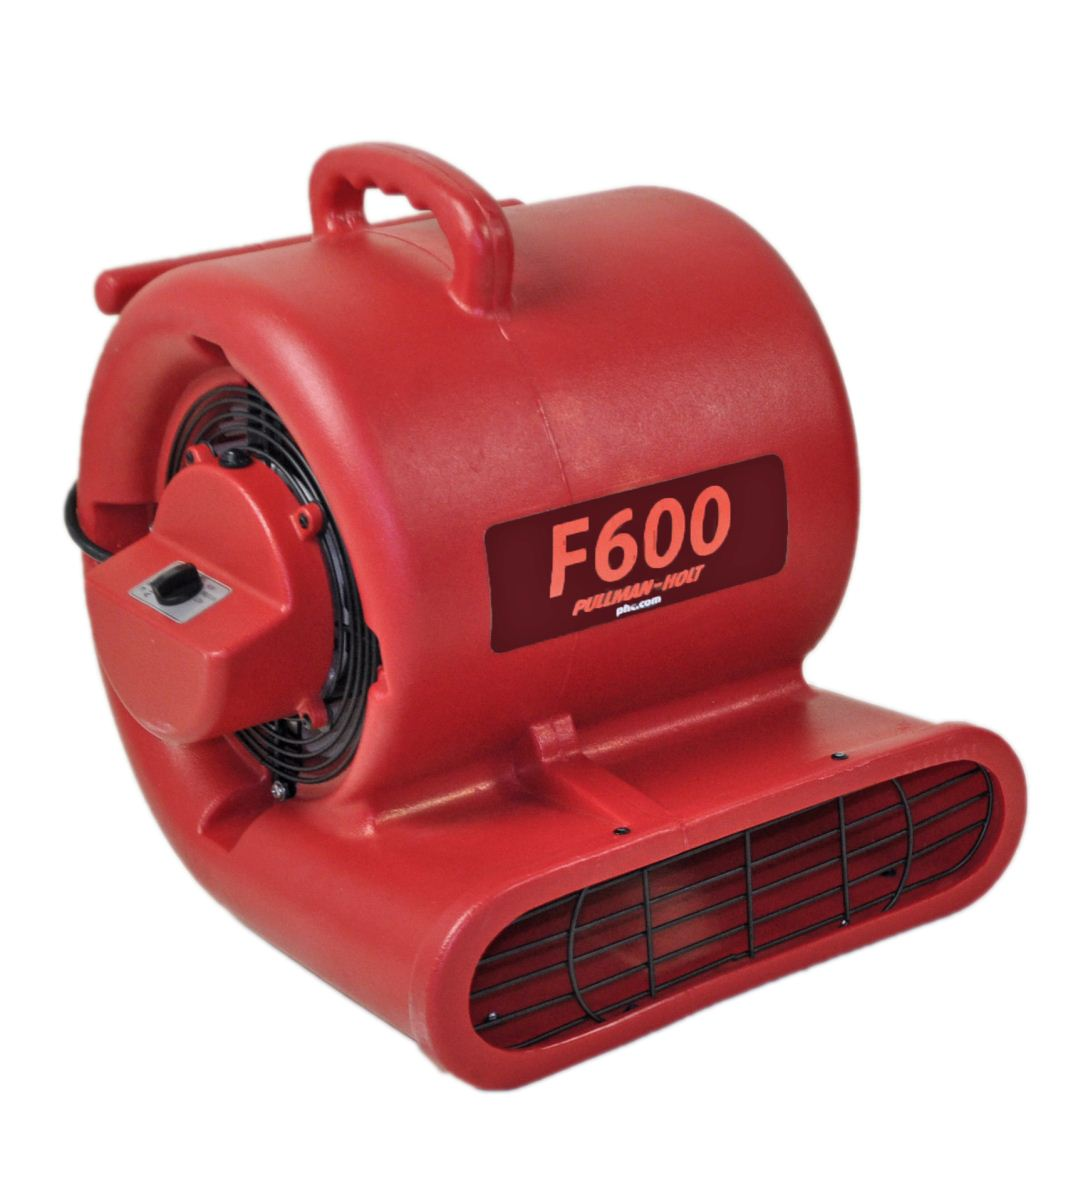 Blower Fan 3 Speed 120V F600 #882026